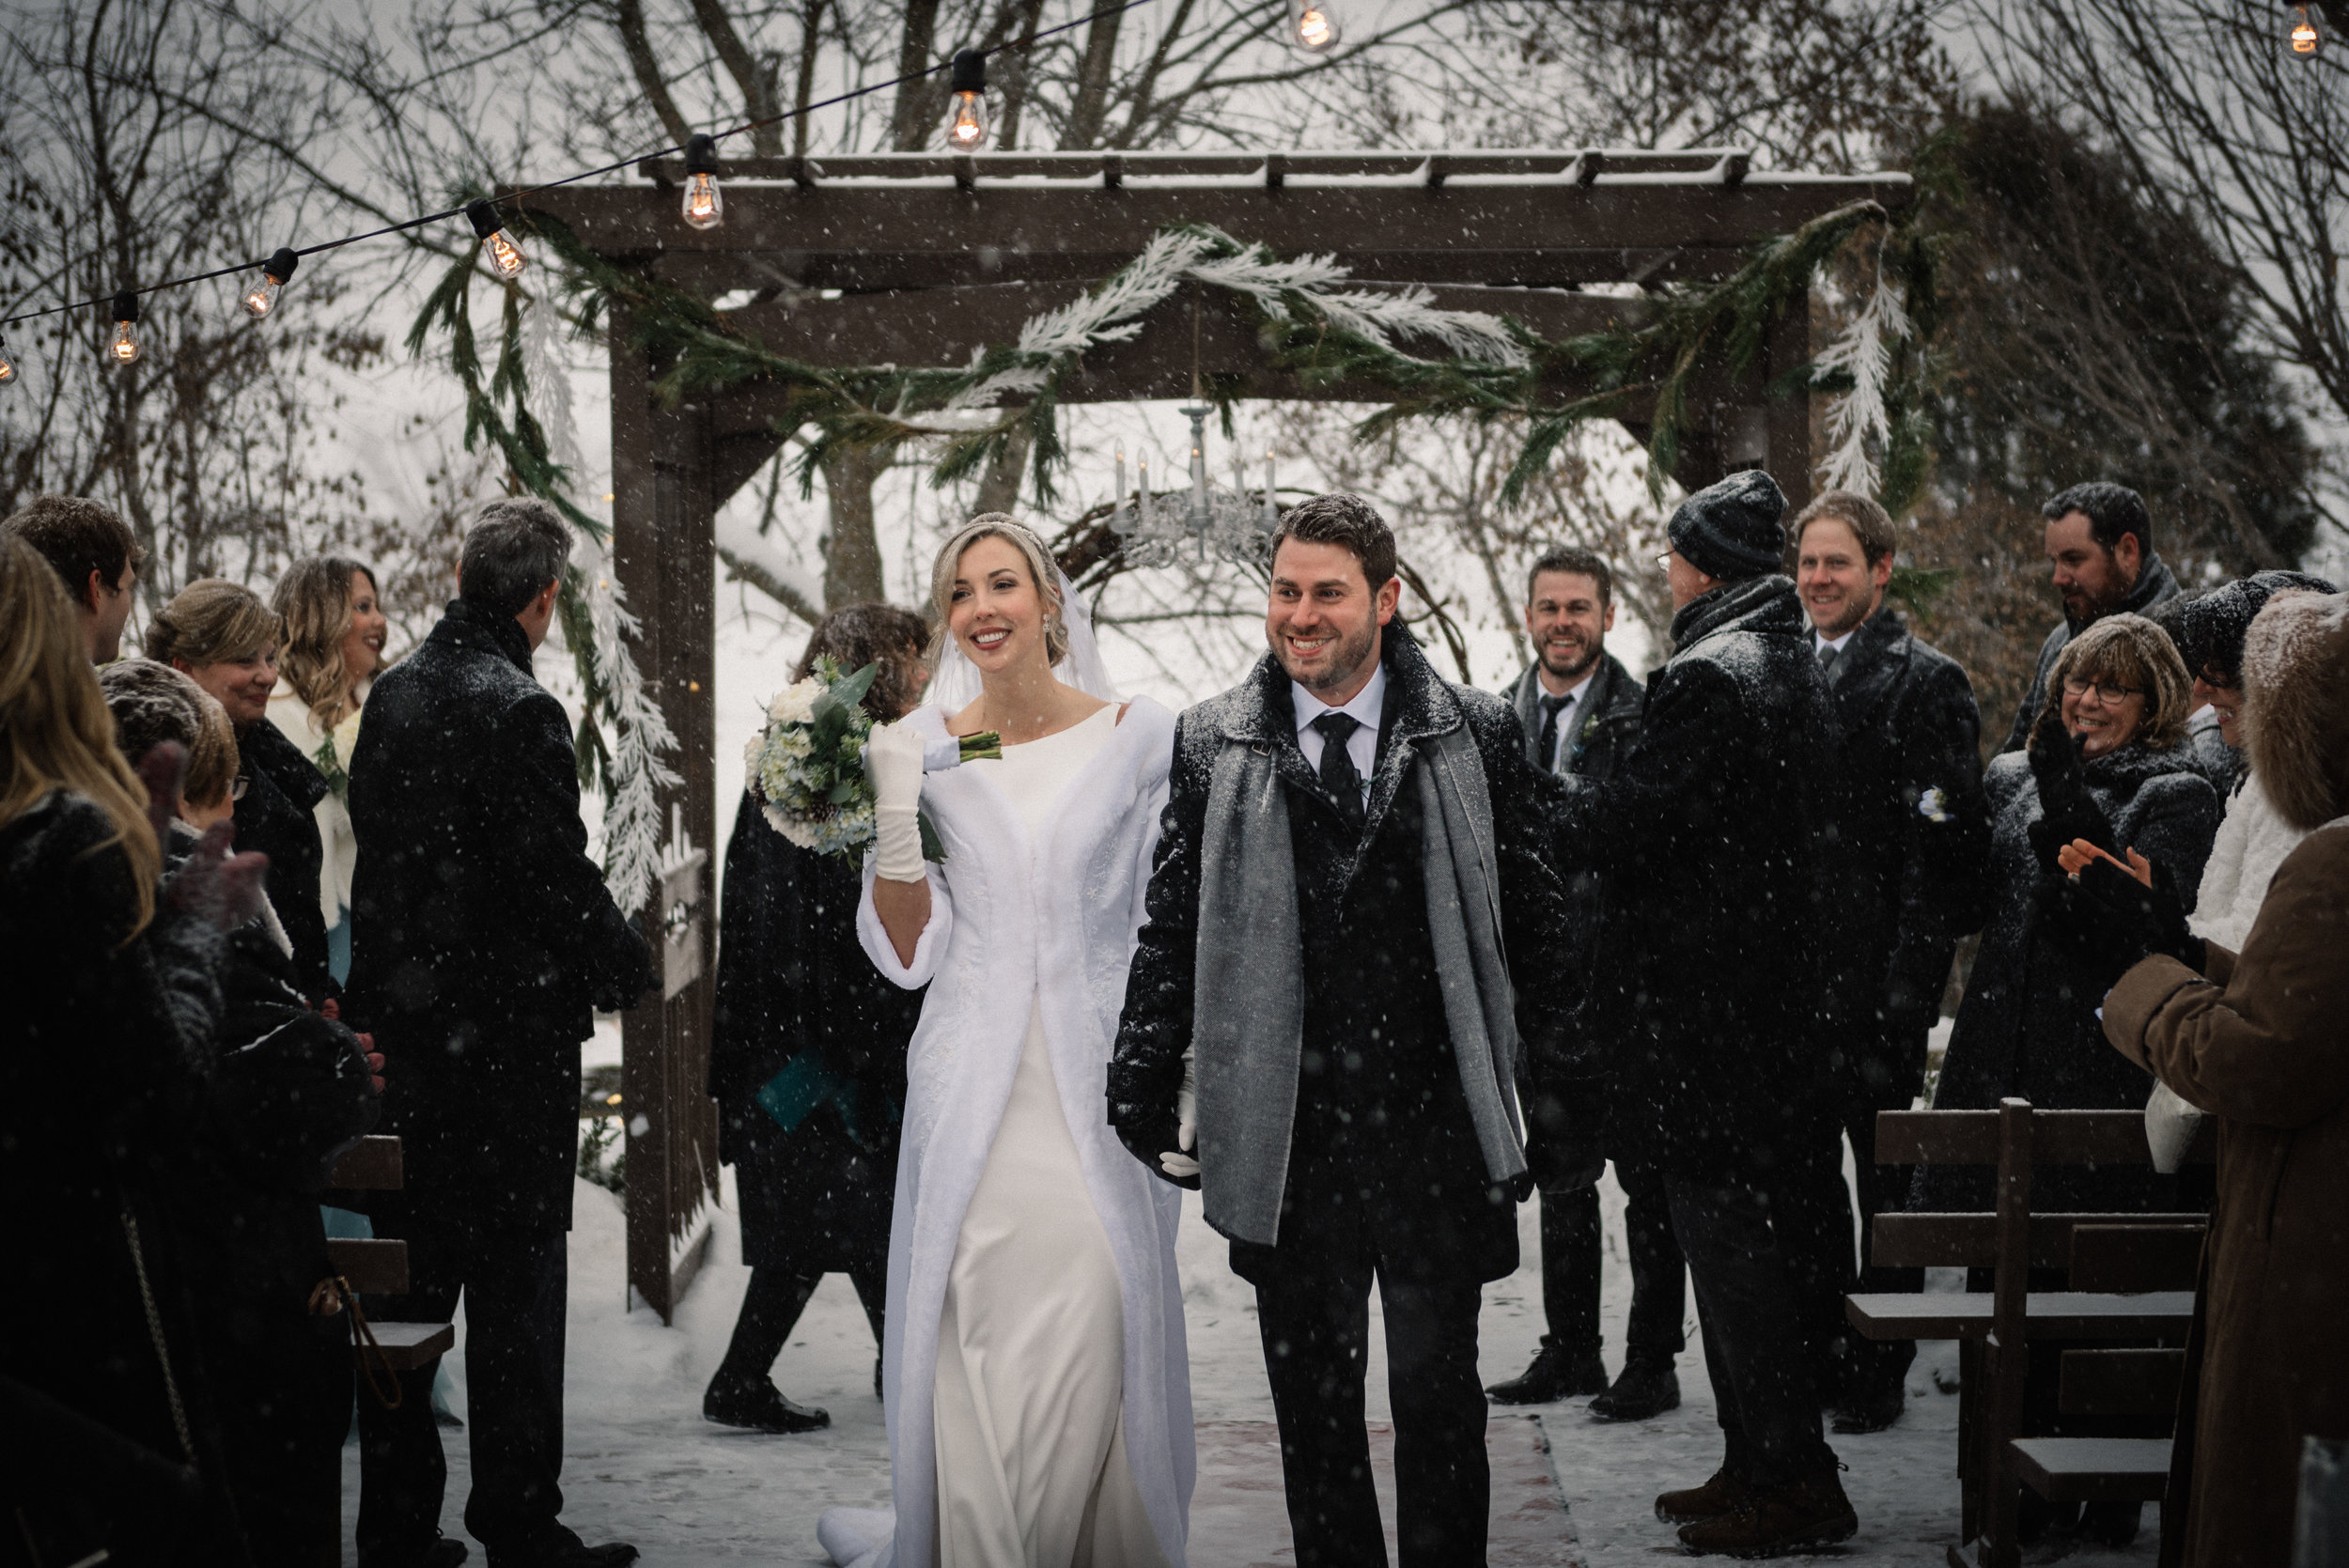 Mocha Tree Studios Ottawa Wedding and Engagement Photographer and Videographer Dark Moody Intimate Authentic Modern Romantic Cinematic Best Candid 5 THINGS YOU SHOULDN'T WORRY ABOUT ON YOUR WEDDING DAY. AND WHAT CAN HELP YOU AVOID THEM